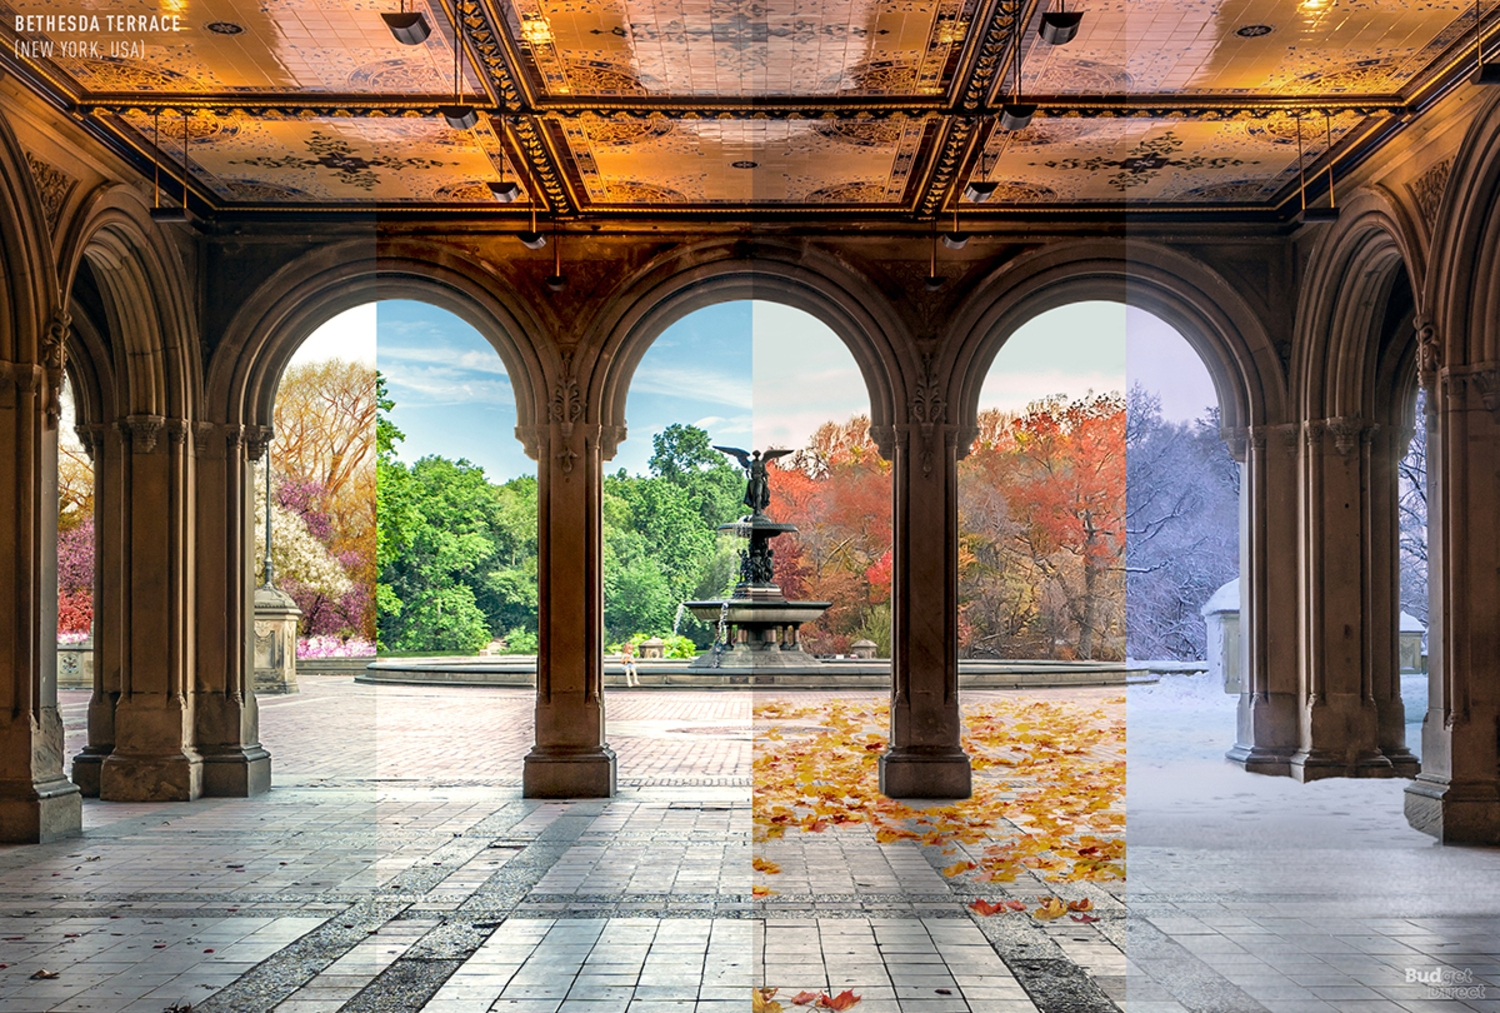 4 Seasons of Bethesda Terrace, Central Park, New York, New York